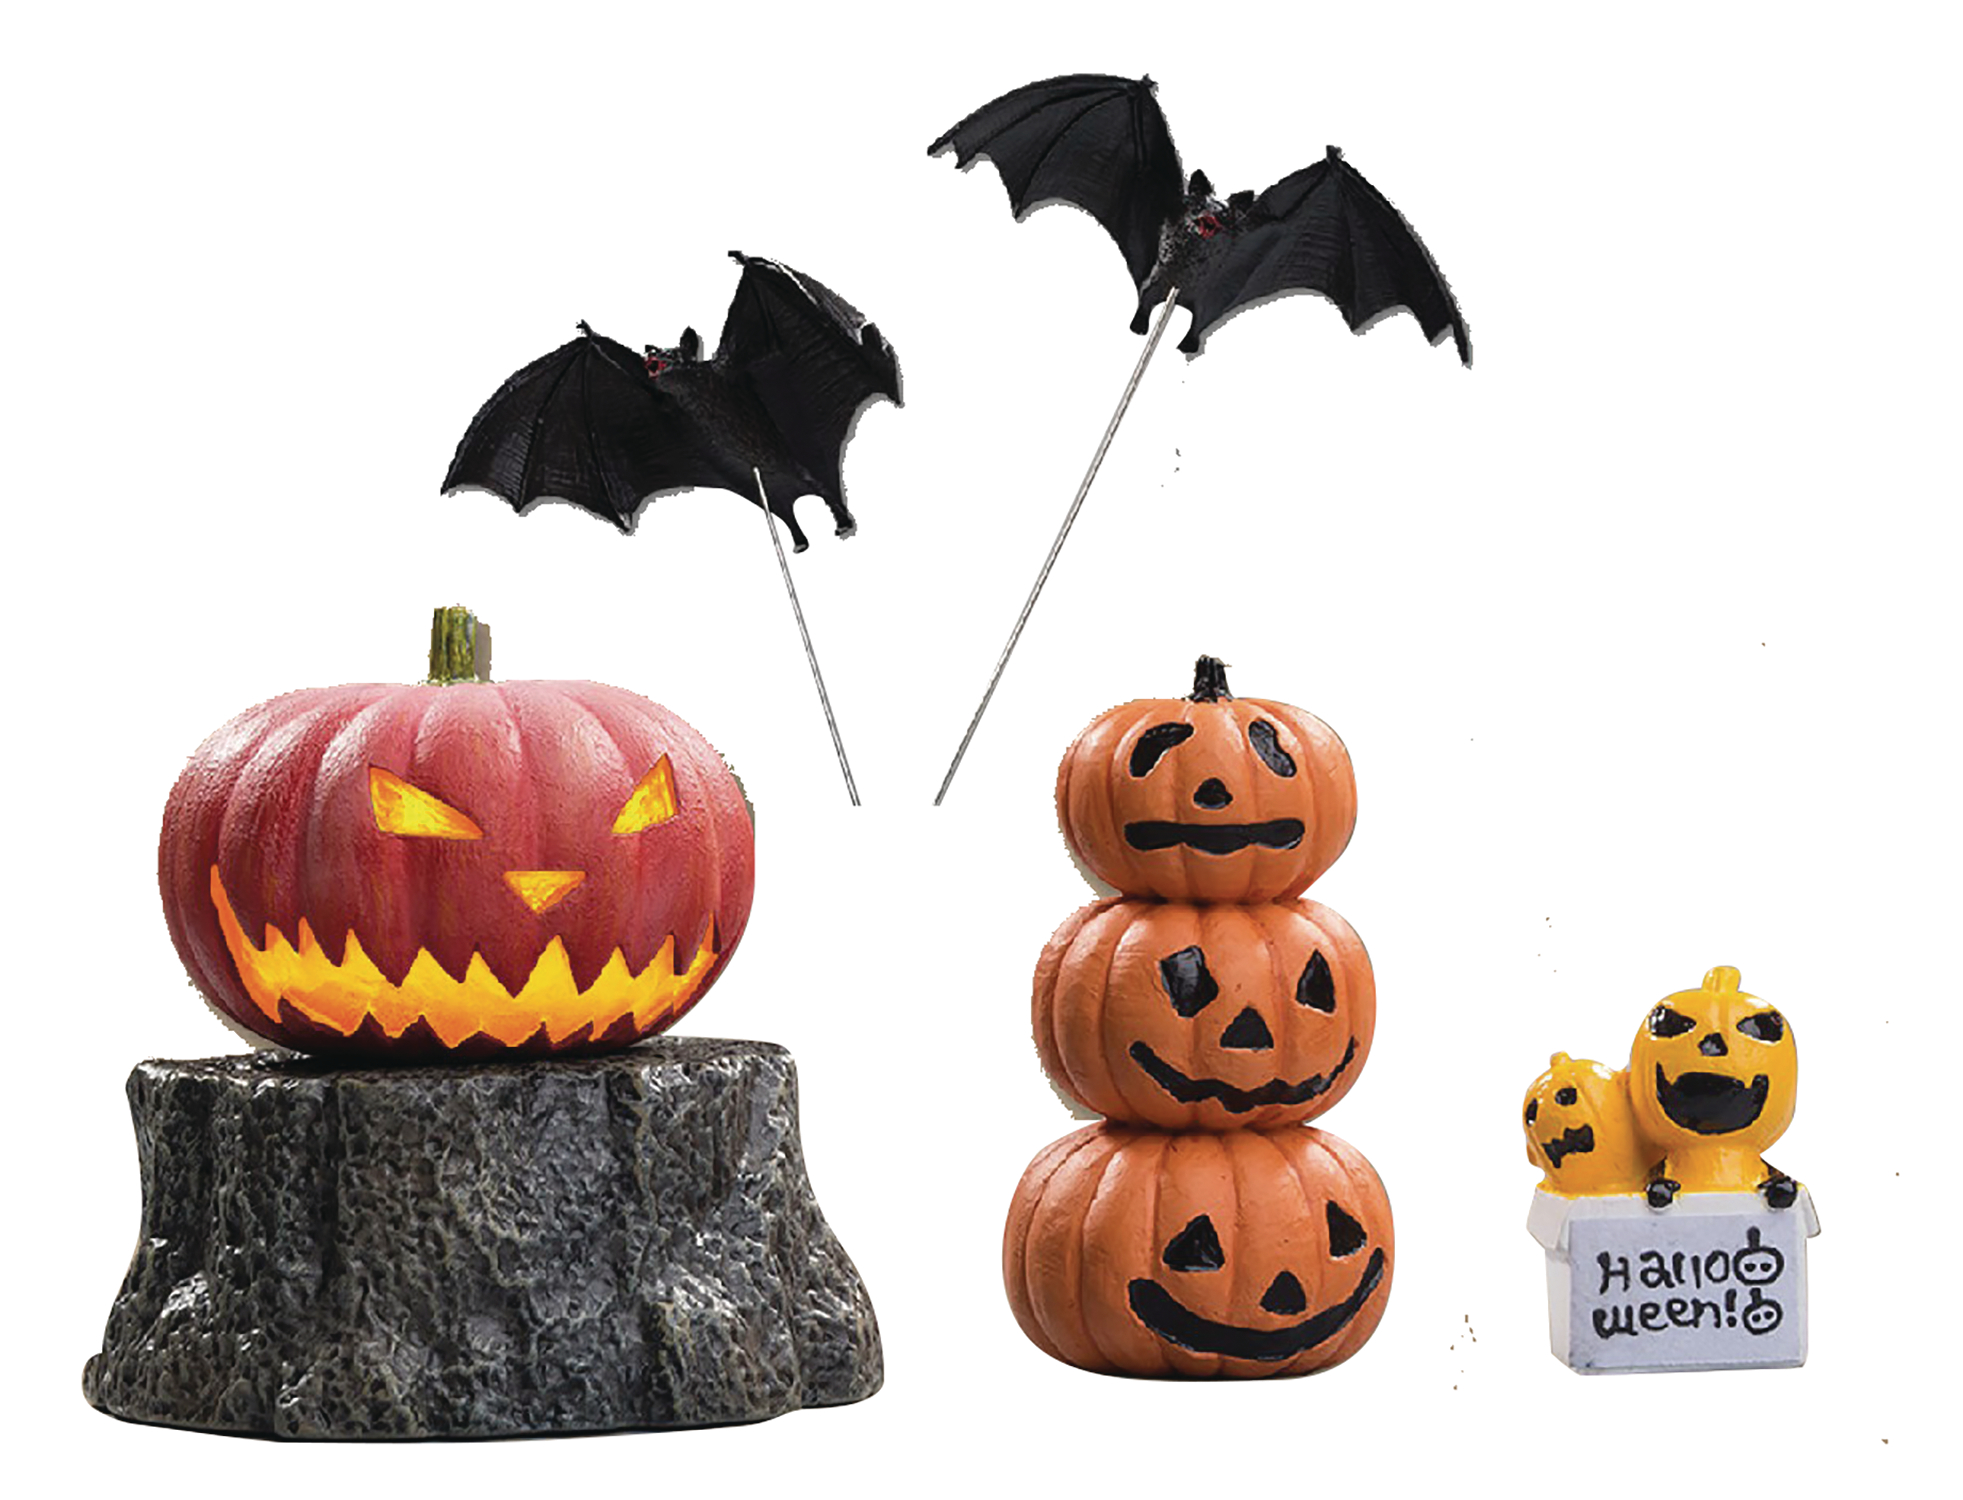 HARRY POTTER SER 1/6 HALLOWEEN ACCESSORY PACK